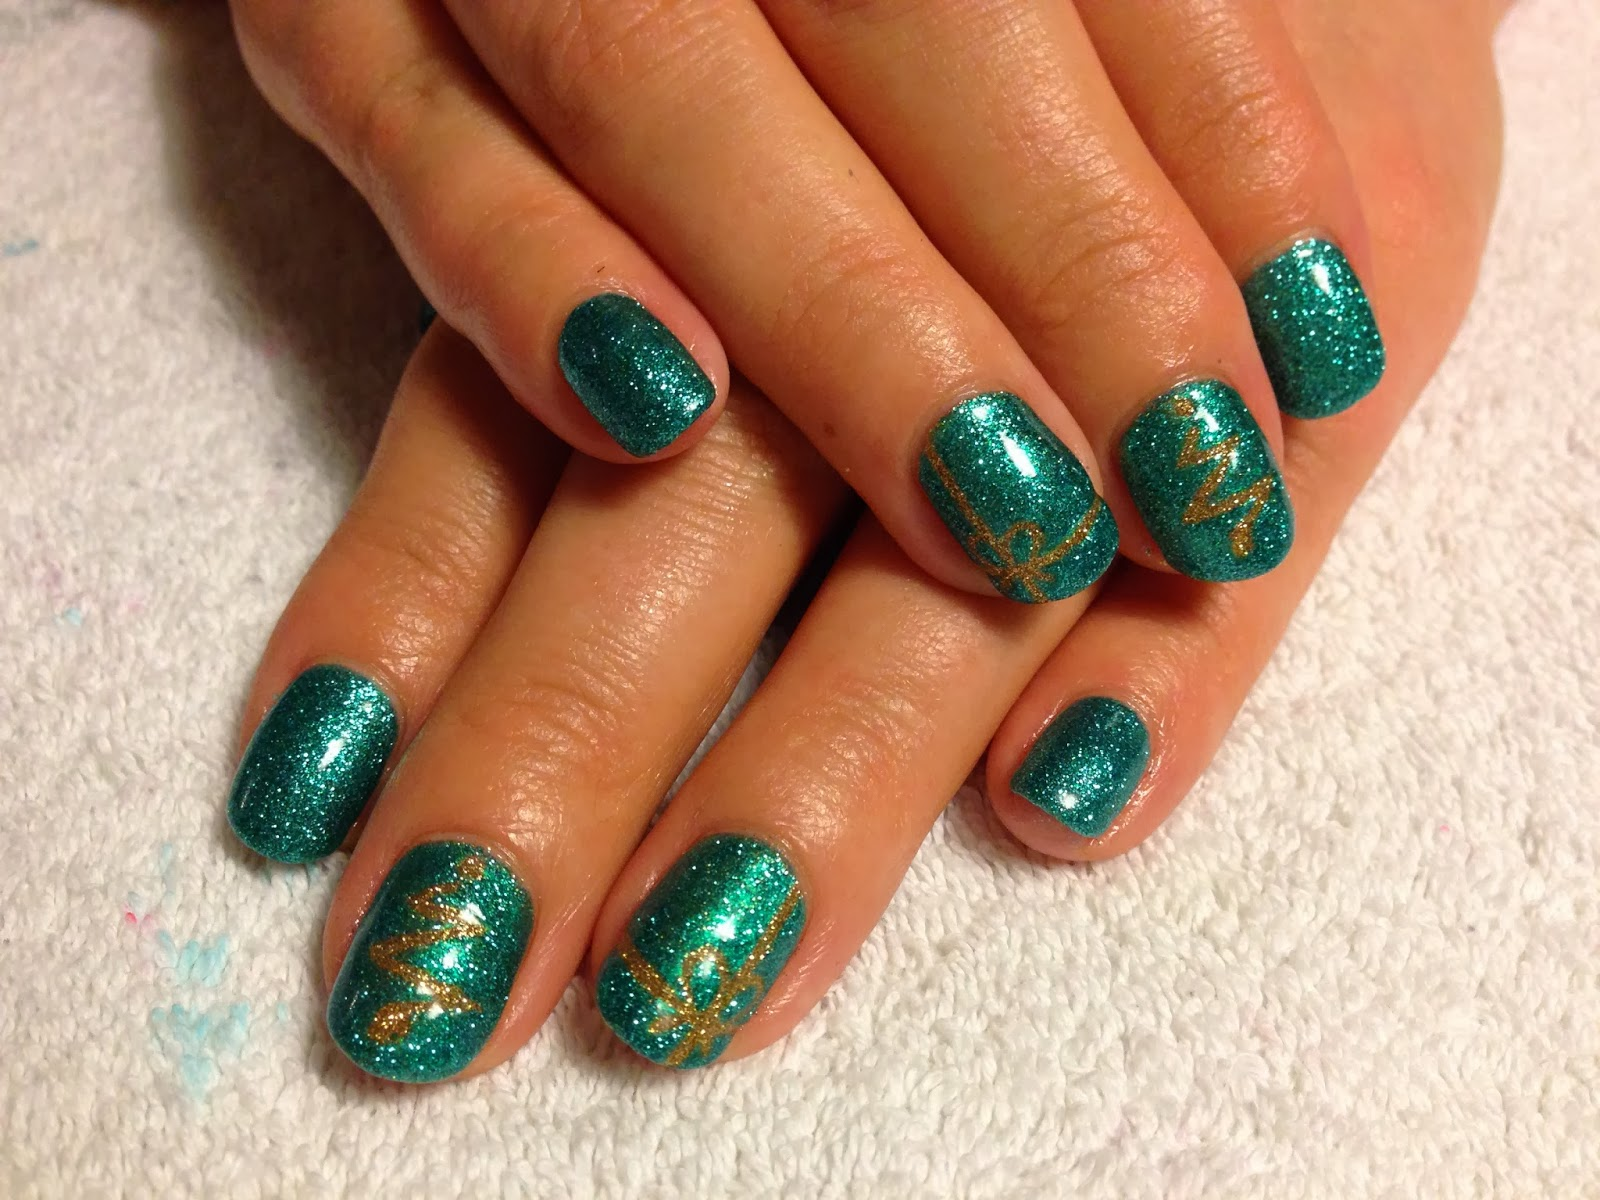 Cnd Shellac Christmas Nail Art 6 Turquoise Twinkle